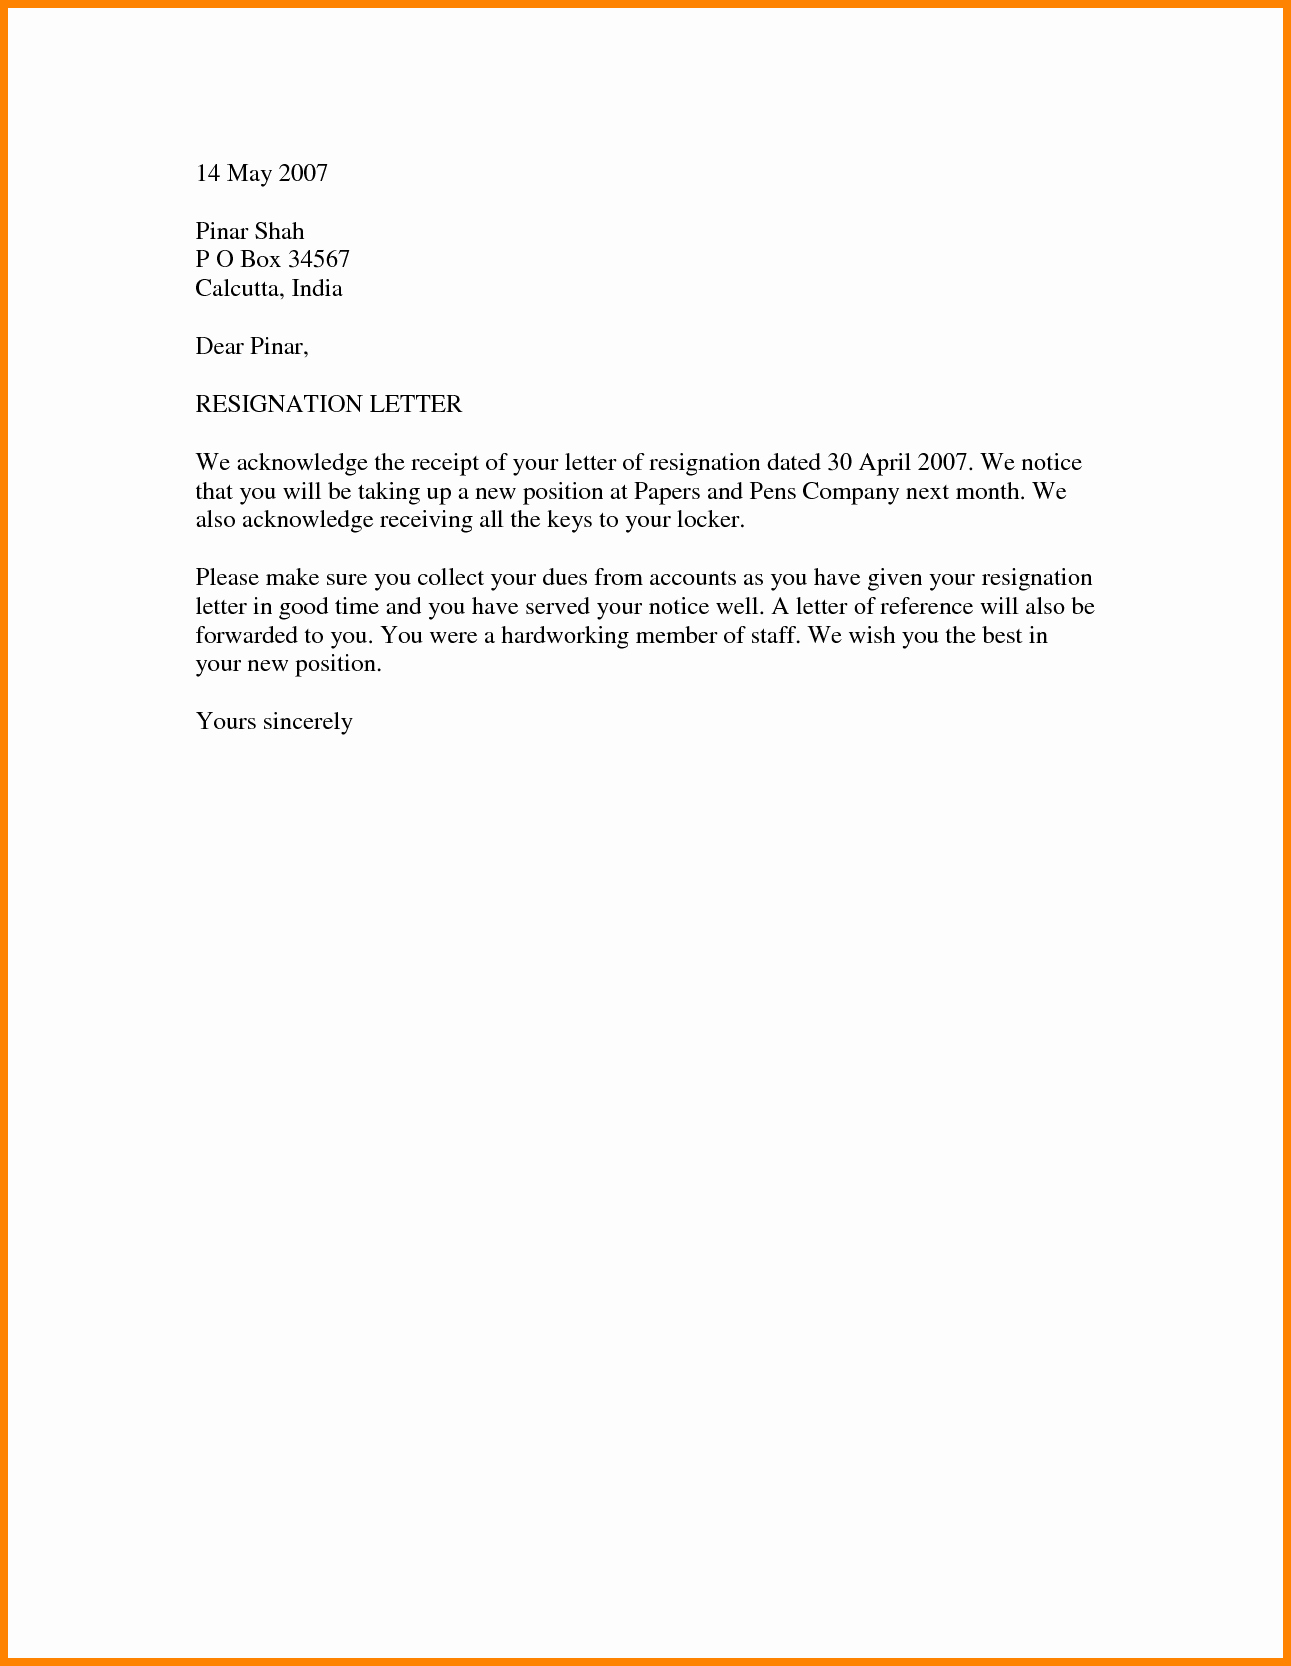 Resignation Letter Templates for Word New Resignation Letter Template Word